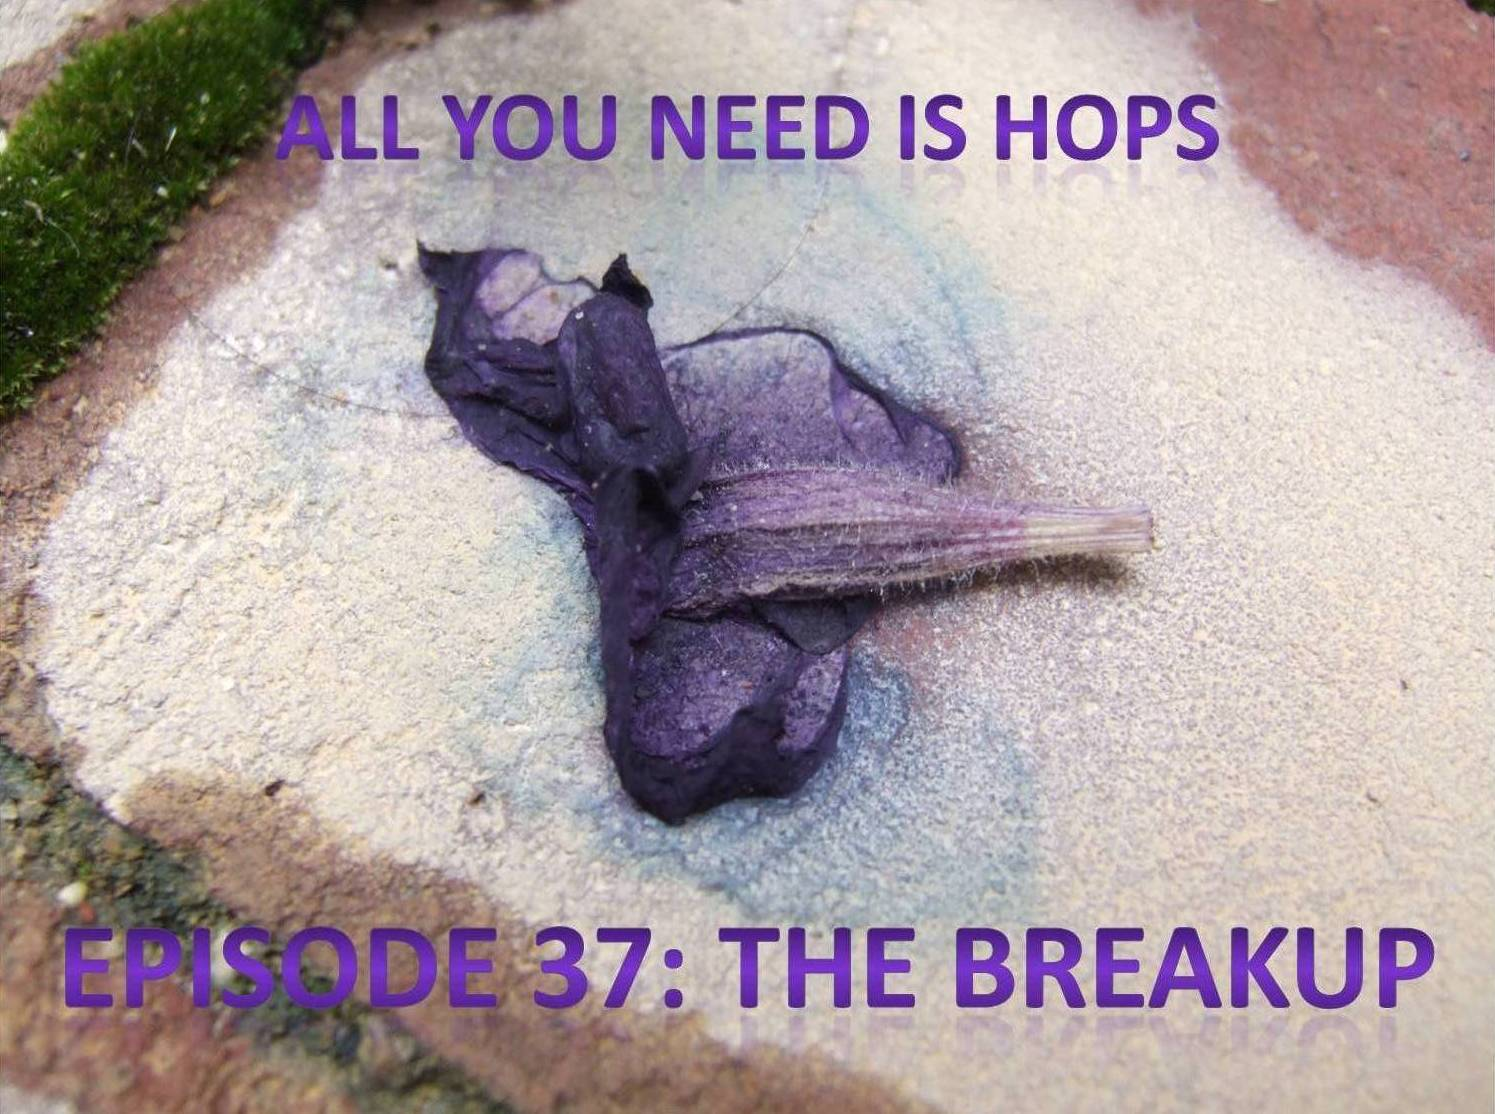 all you need is hops episode